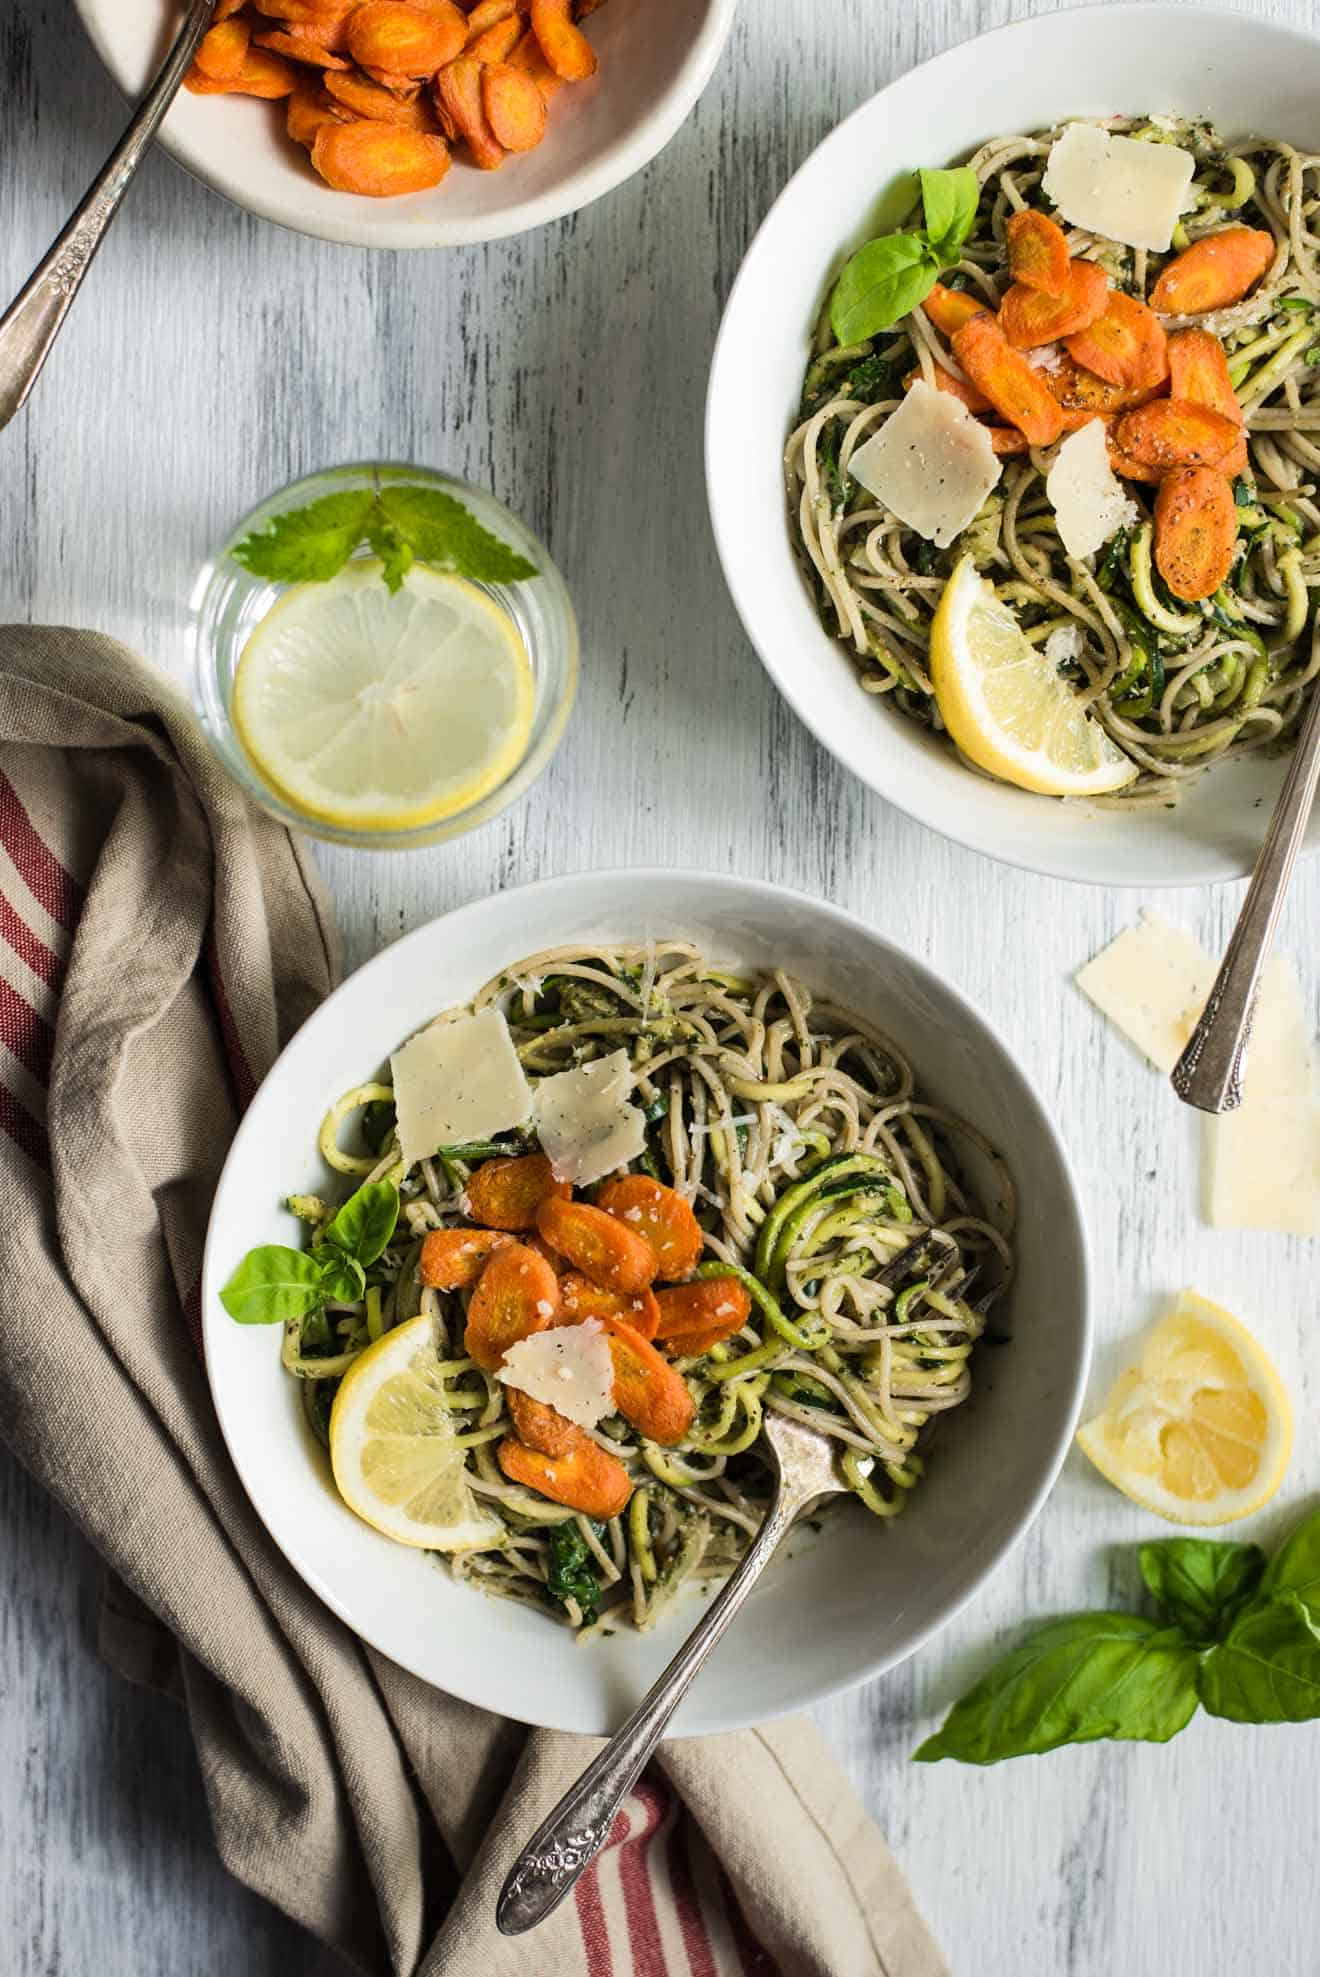 Spring Pasta with Carrot Top Pesto - easy gluten-free, vegetarian dinner in 30 minutes! by @healthynibs